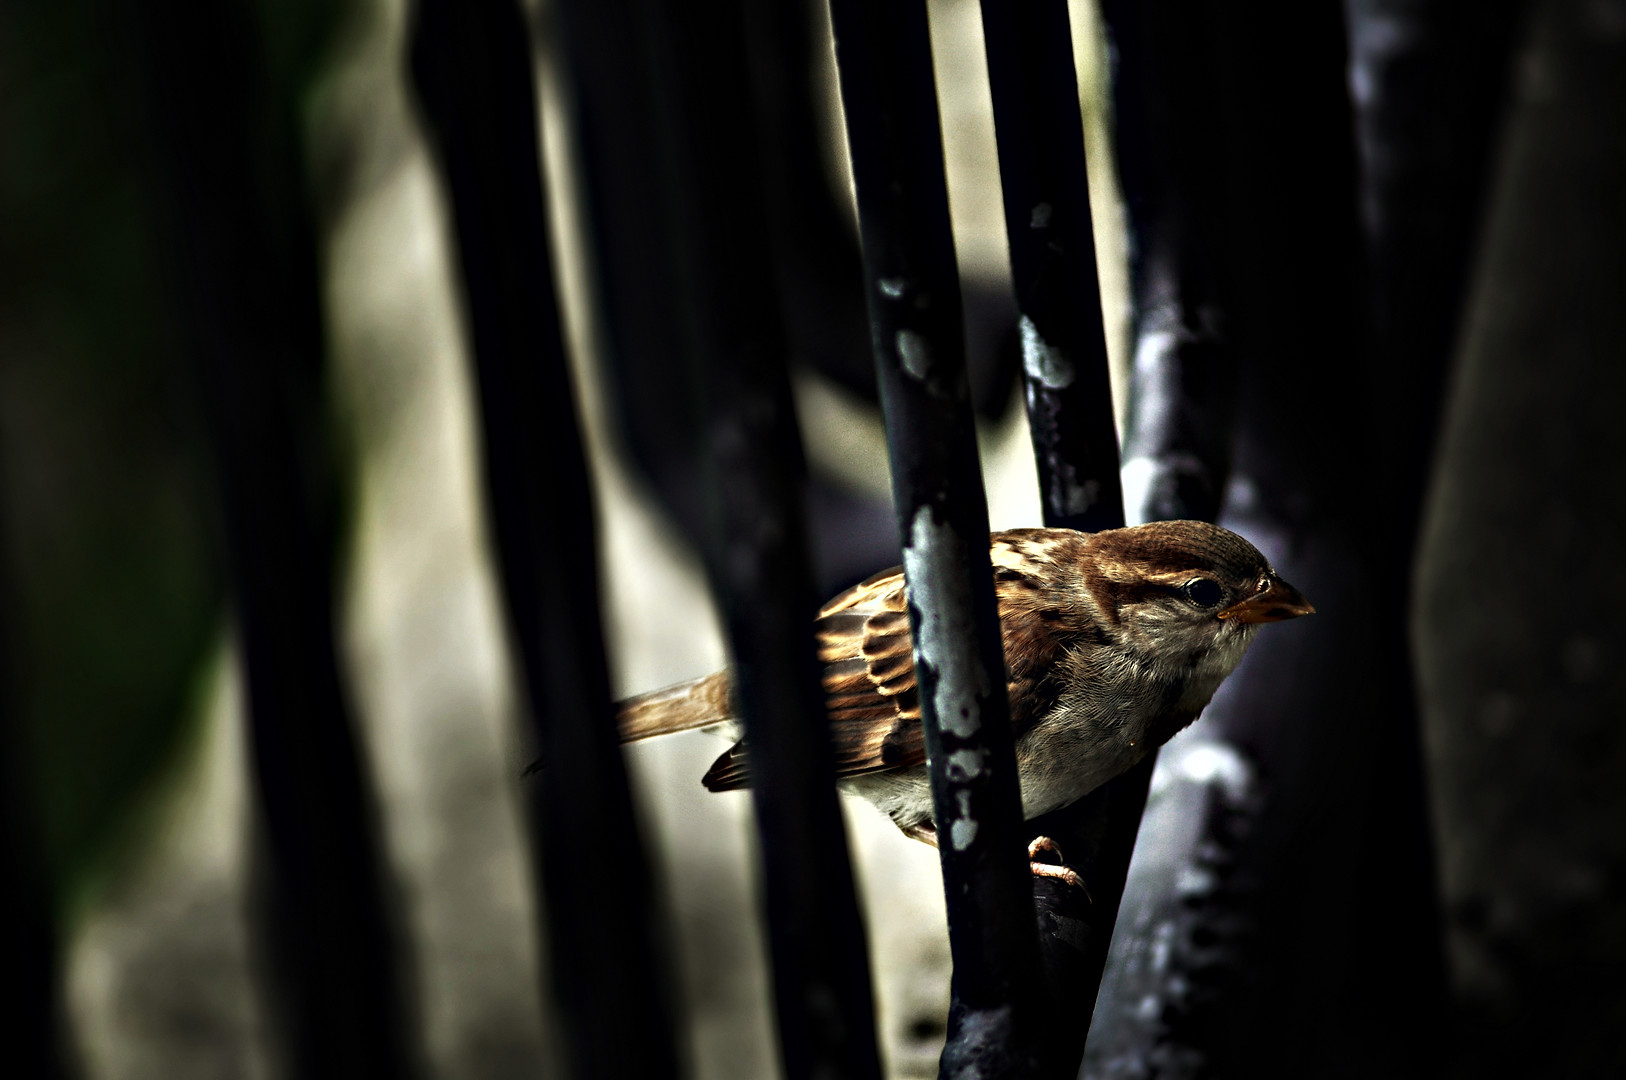 Prison for the Bird